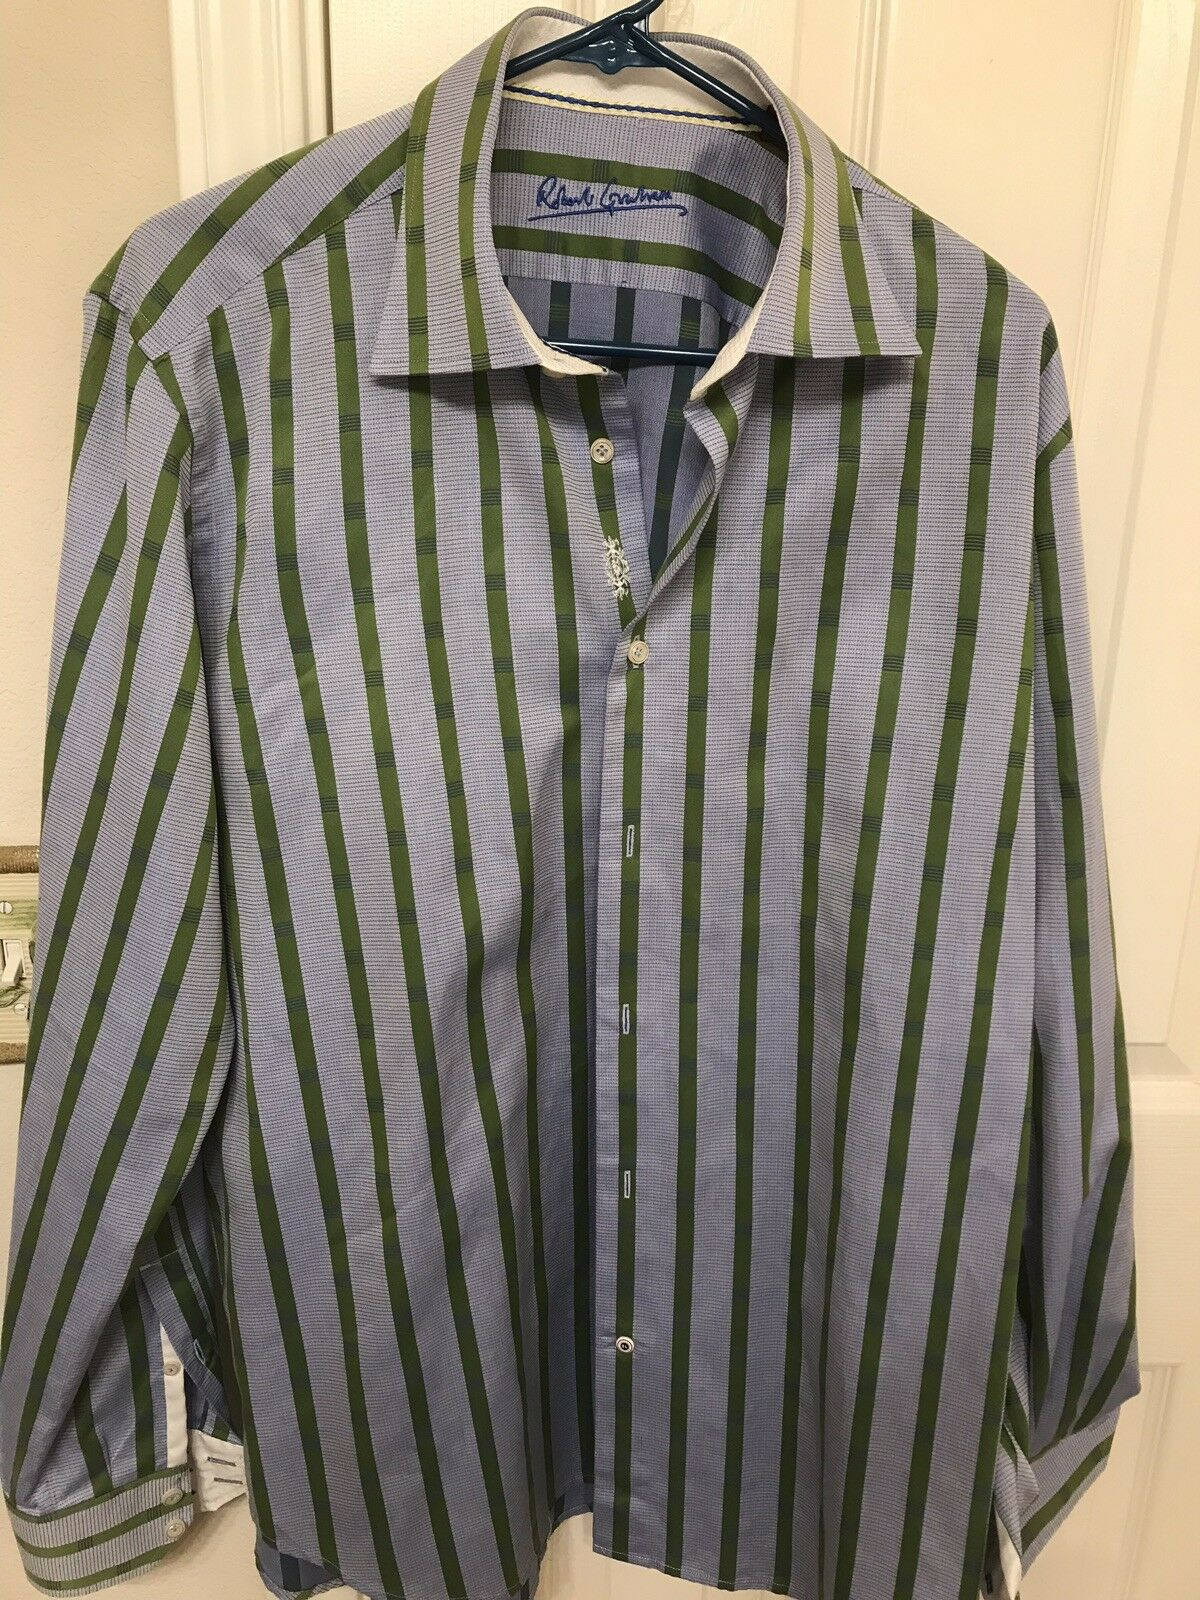 Robert Graham Flip Cuff Shirt Knowledge Wisdom Truth Size L bluee w Green Stripe